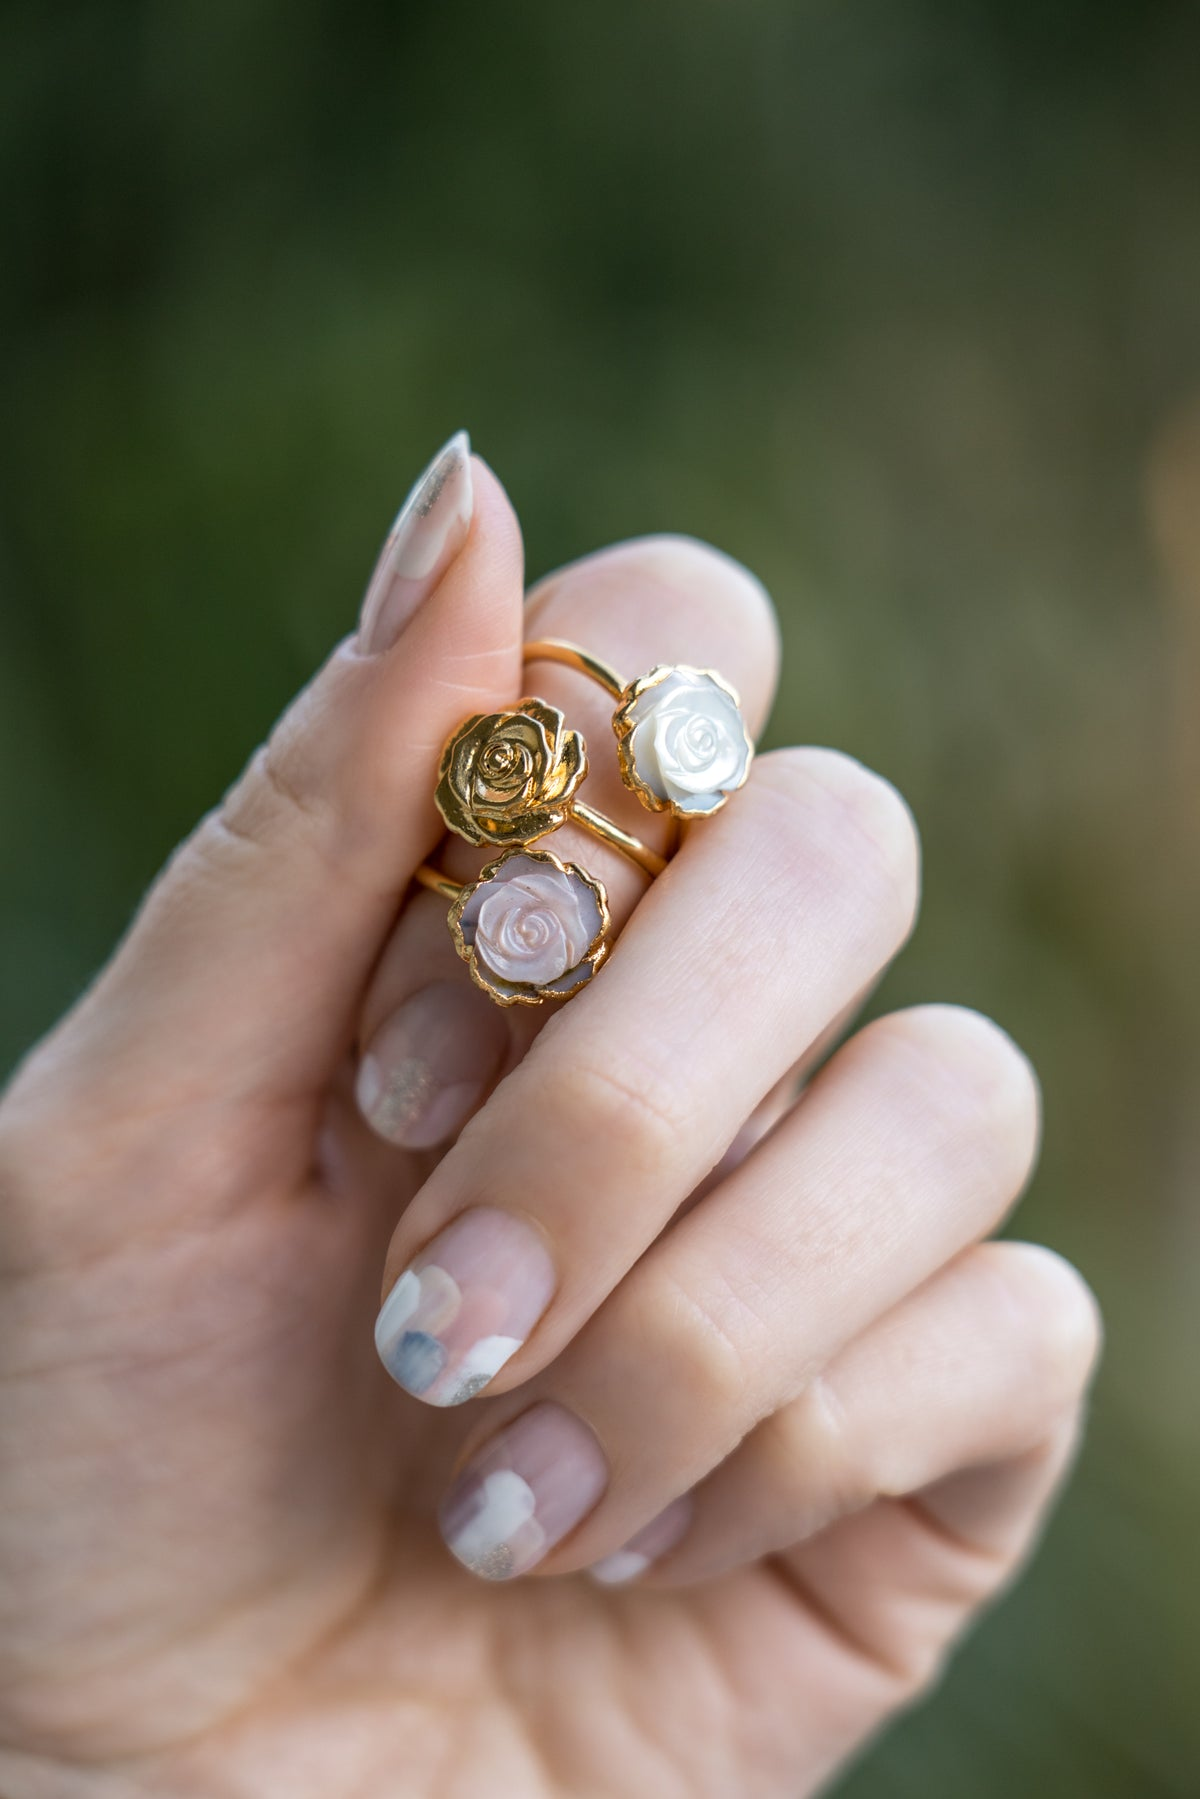 janna Conner pink mother of pearl and gold rosette ring stacks in model hand with nail art mani